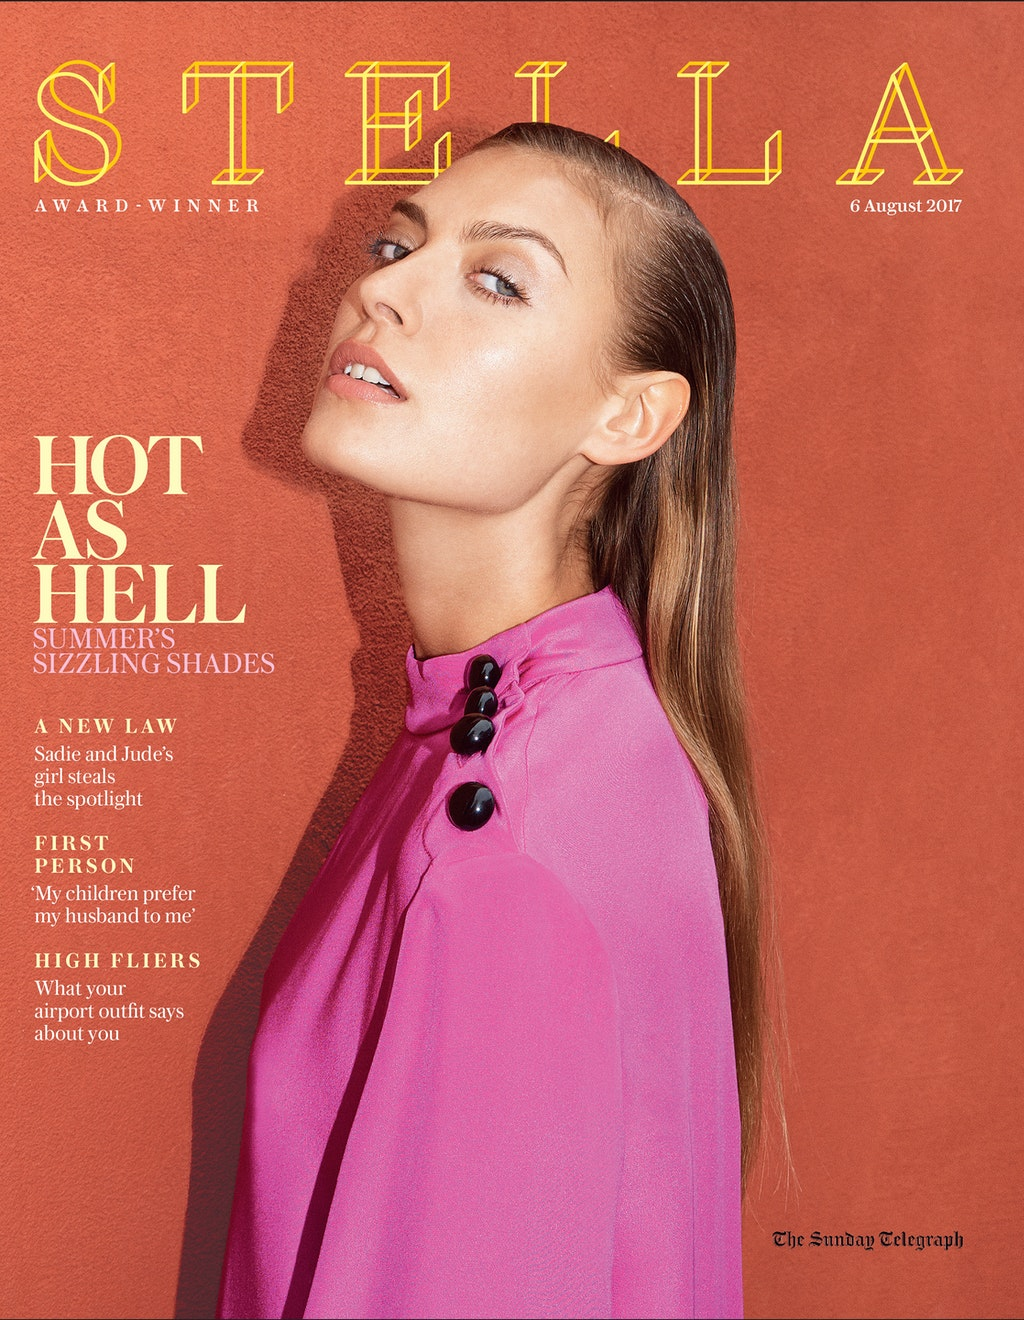 Stella Magazine x The Sunday Telegraph